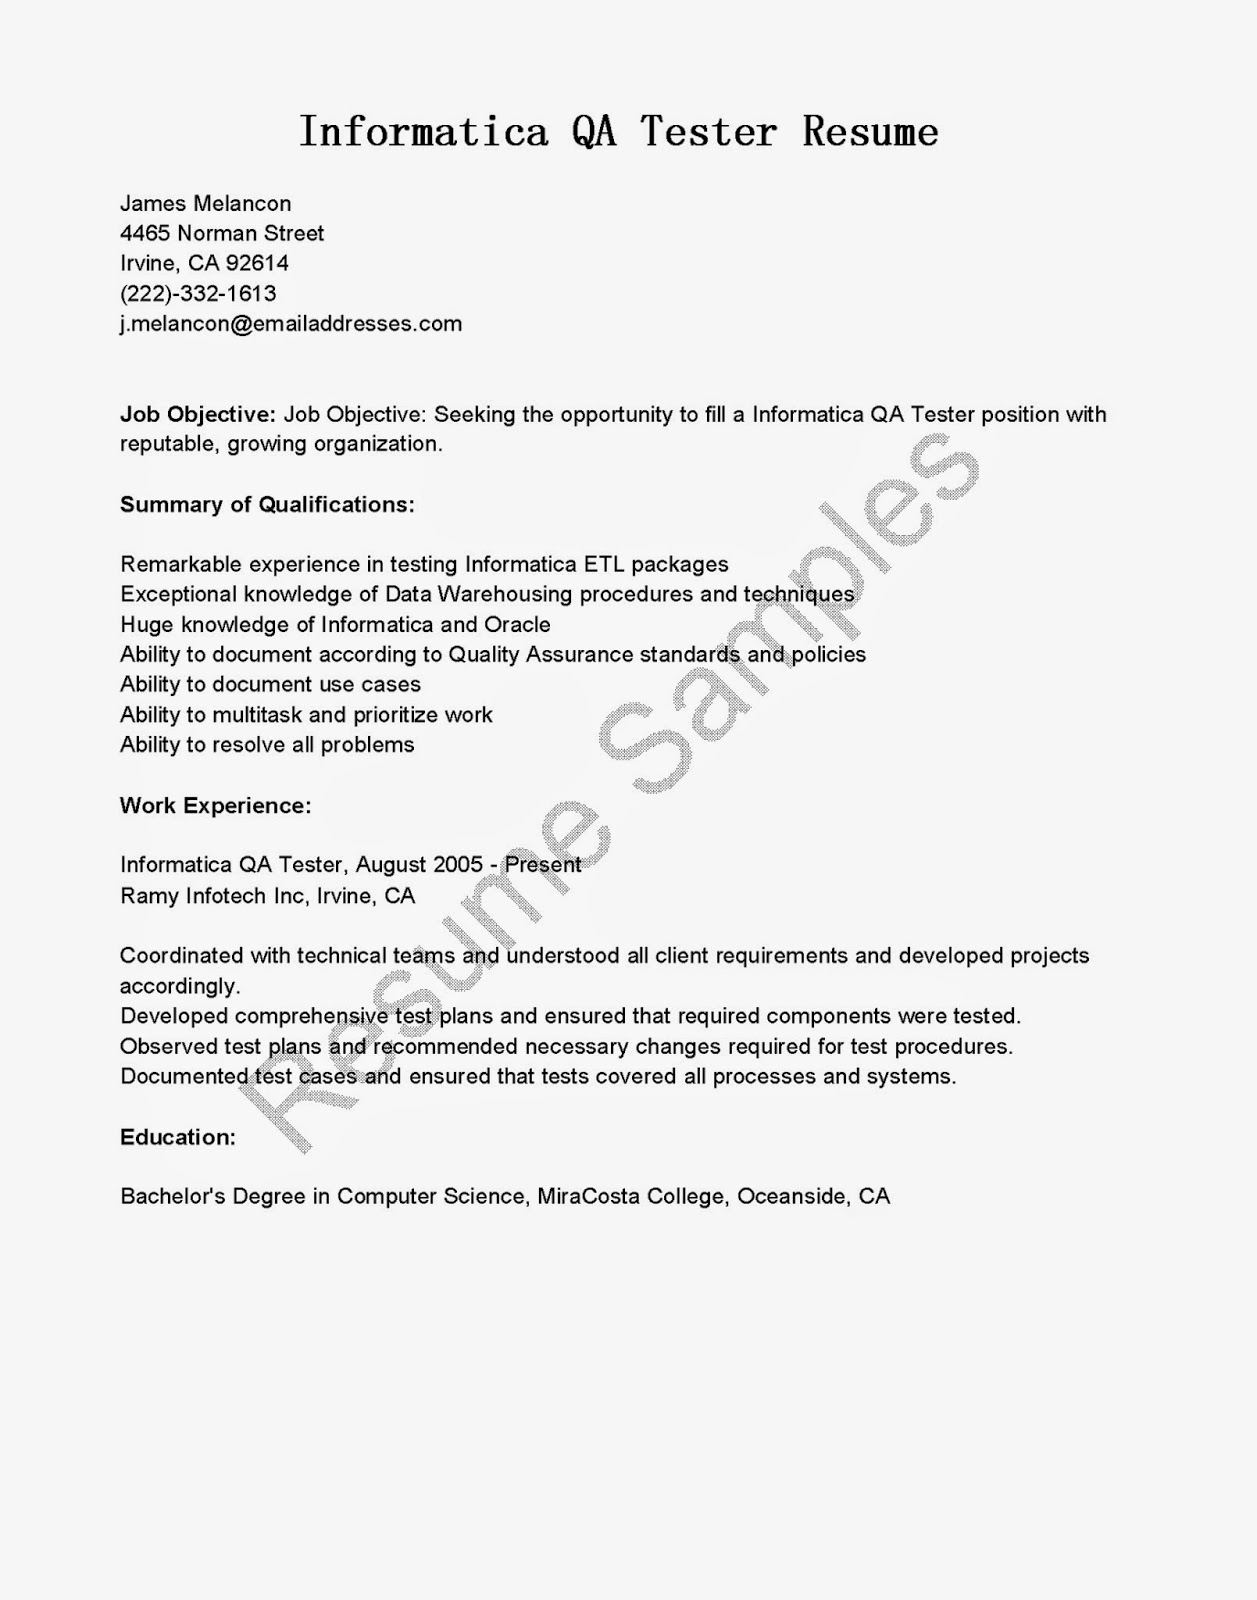 Cover Letter Examples For Administrative Assistant     cover     administrative assistant cover letter sample   example cover letter for administrative assistant